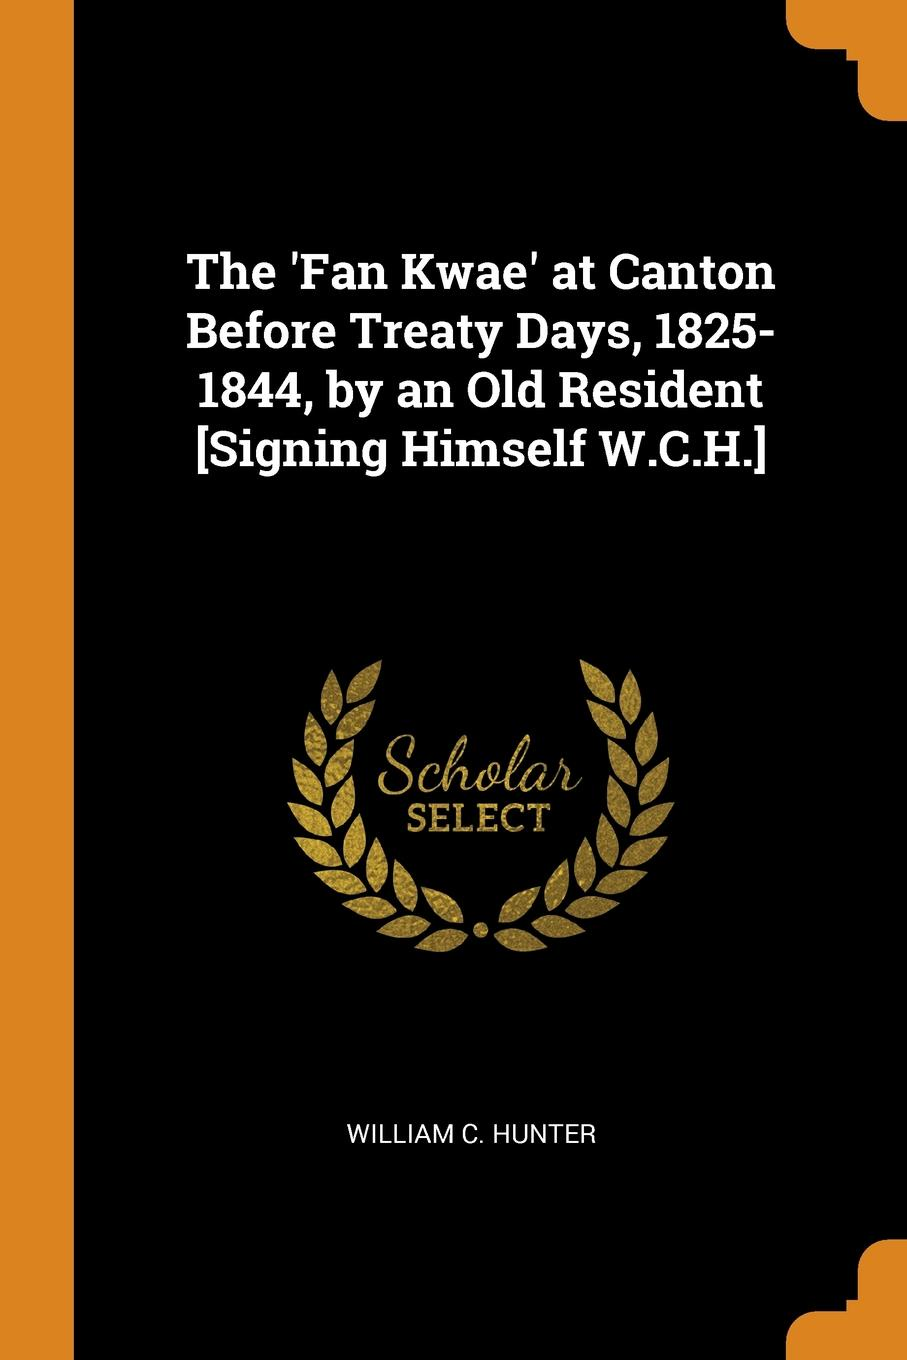 William C. Hunter The .Fan Kwae. at Canton Before Treaty Days, 1825-1844, by an Old Resident .Signing Himself W.C.H.. w c hunter the fan kwae at canton before treaty days 1825 1844